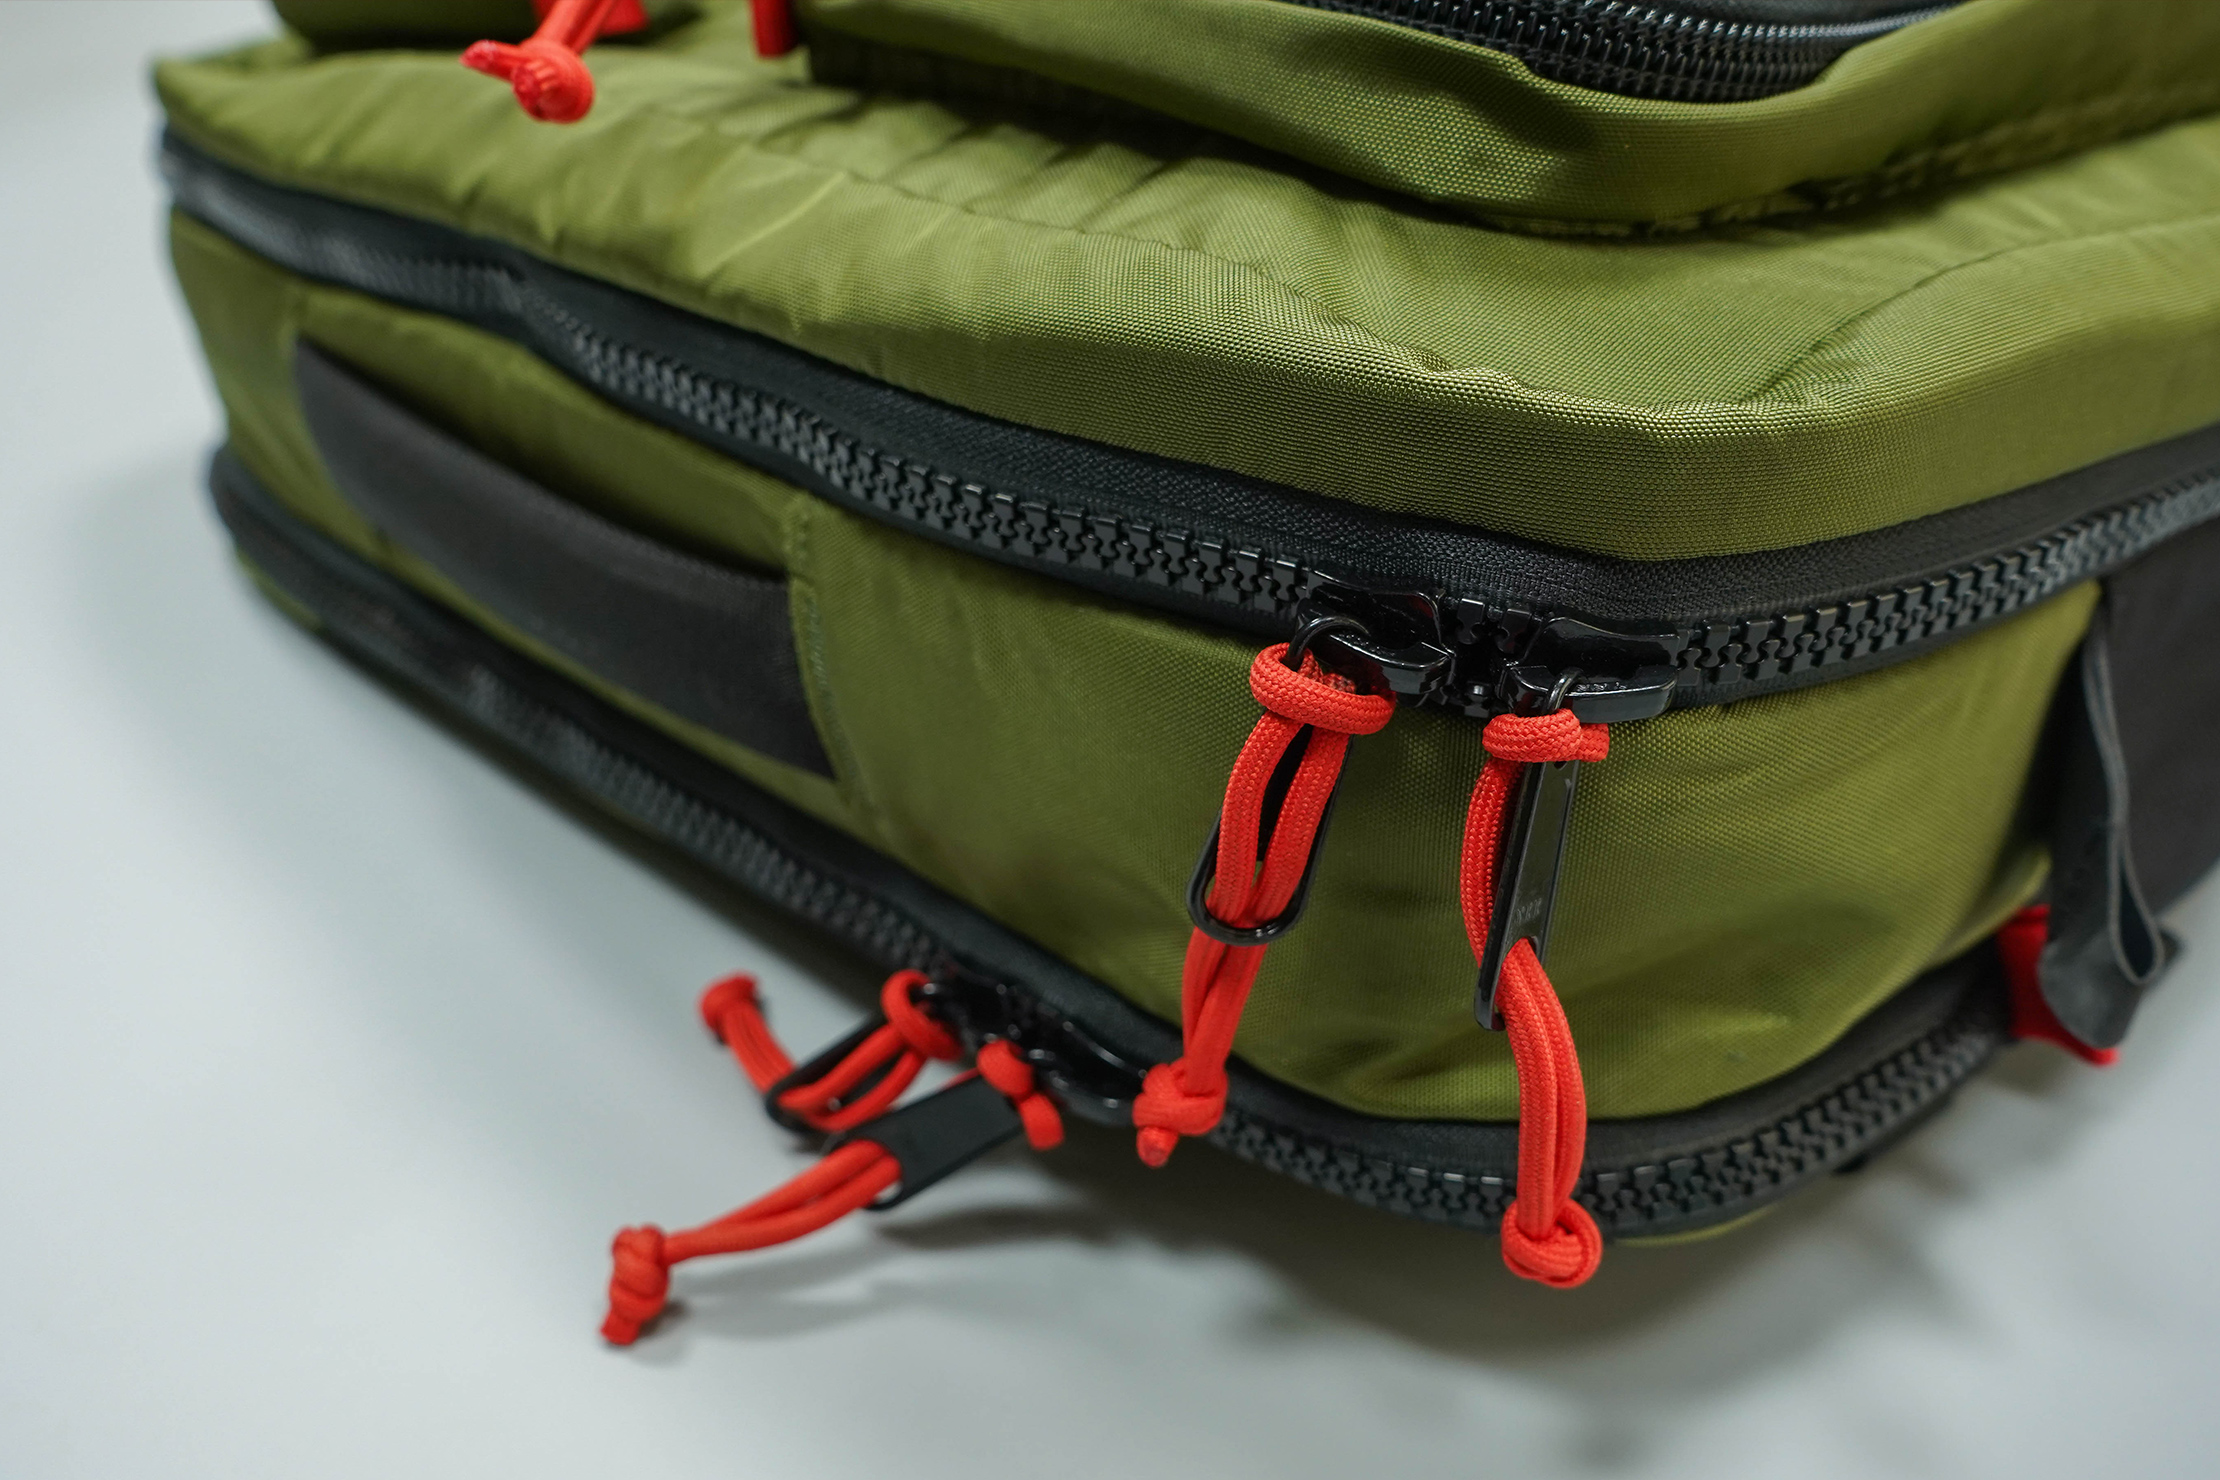 Topo Designs Global Briefcase 3-Day Zippers